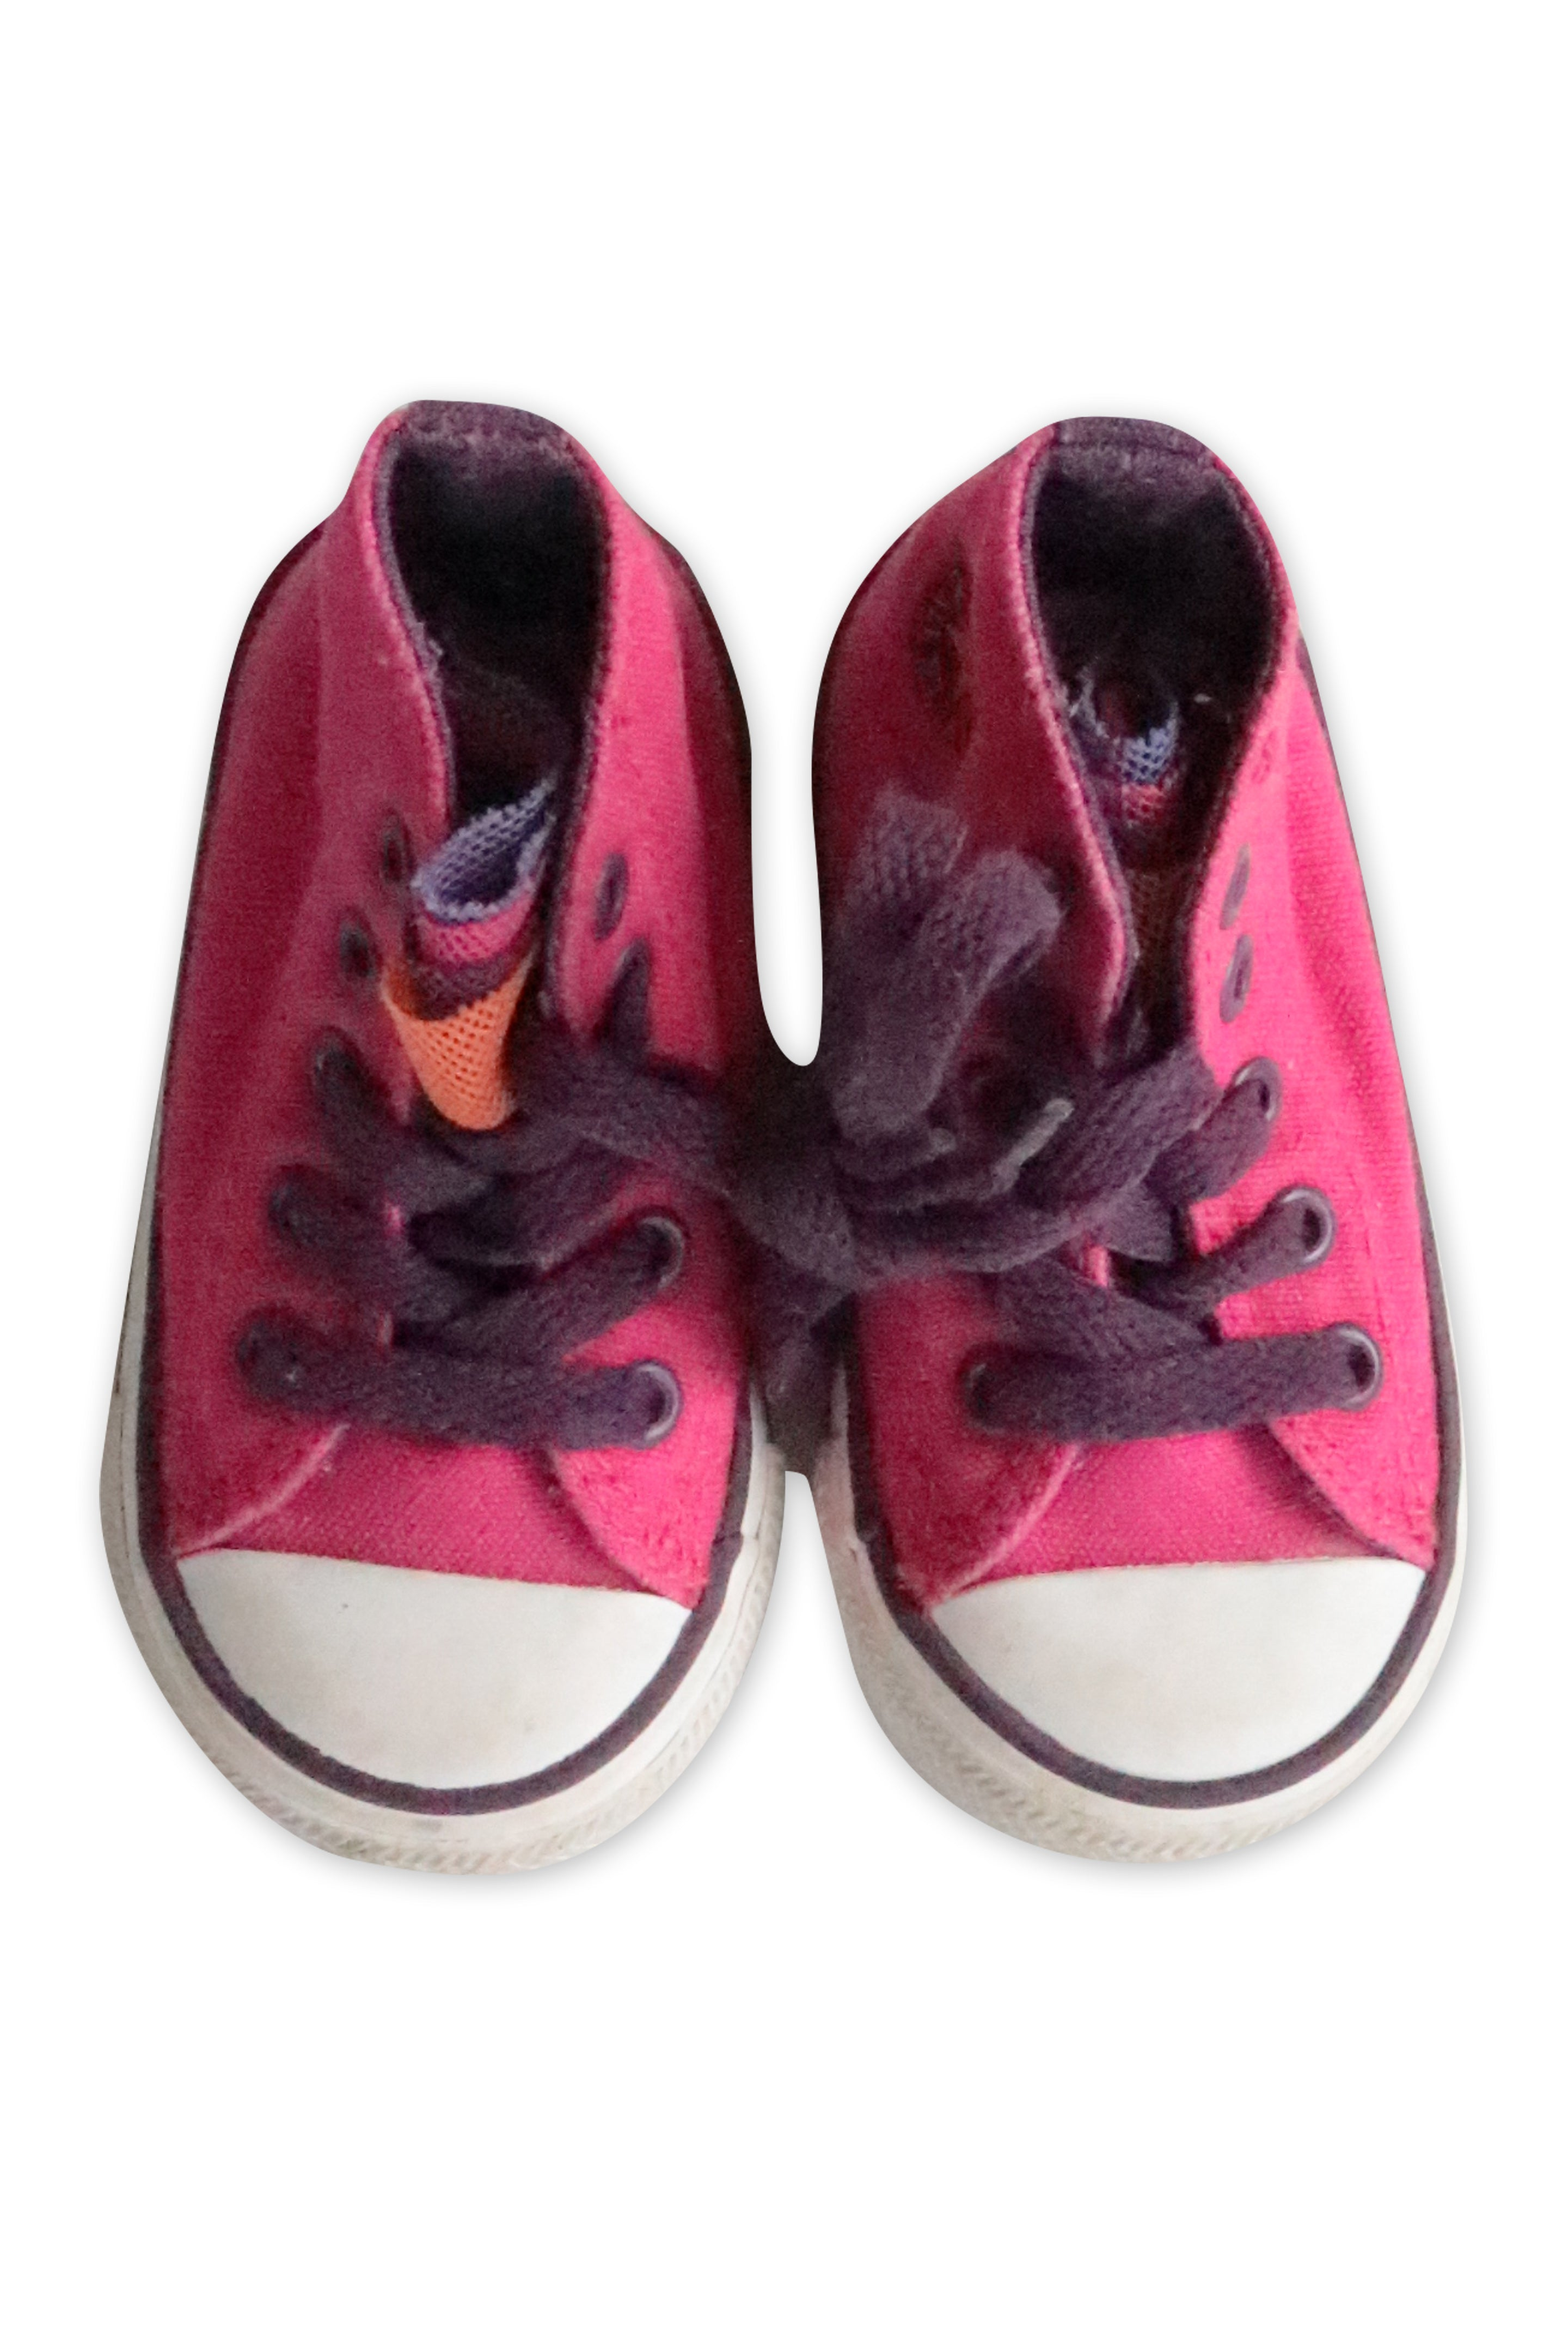 Converse Sneakers, 4